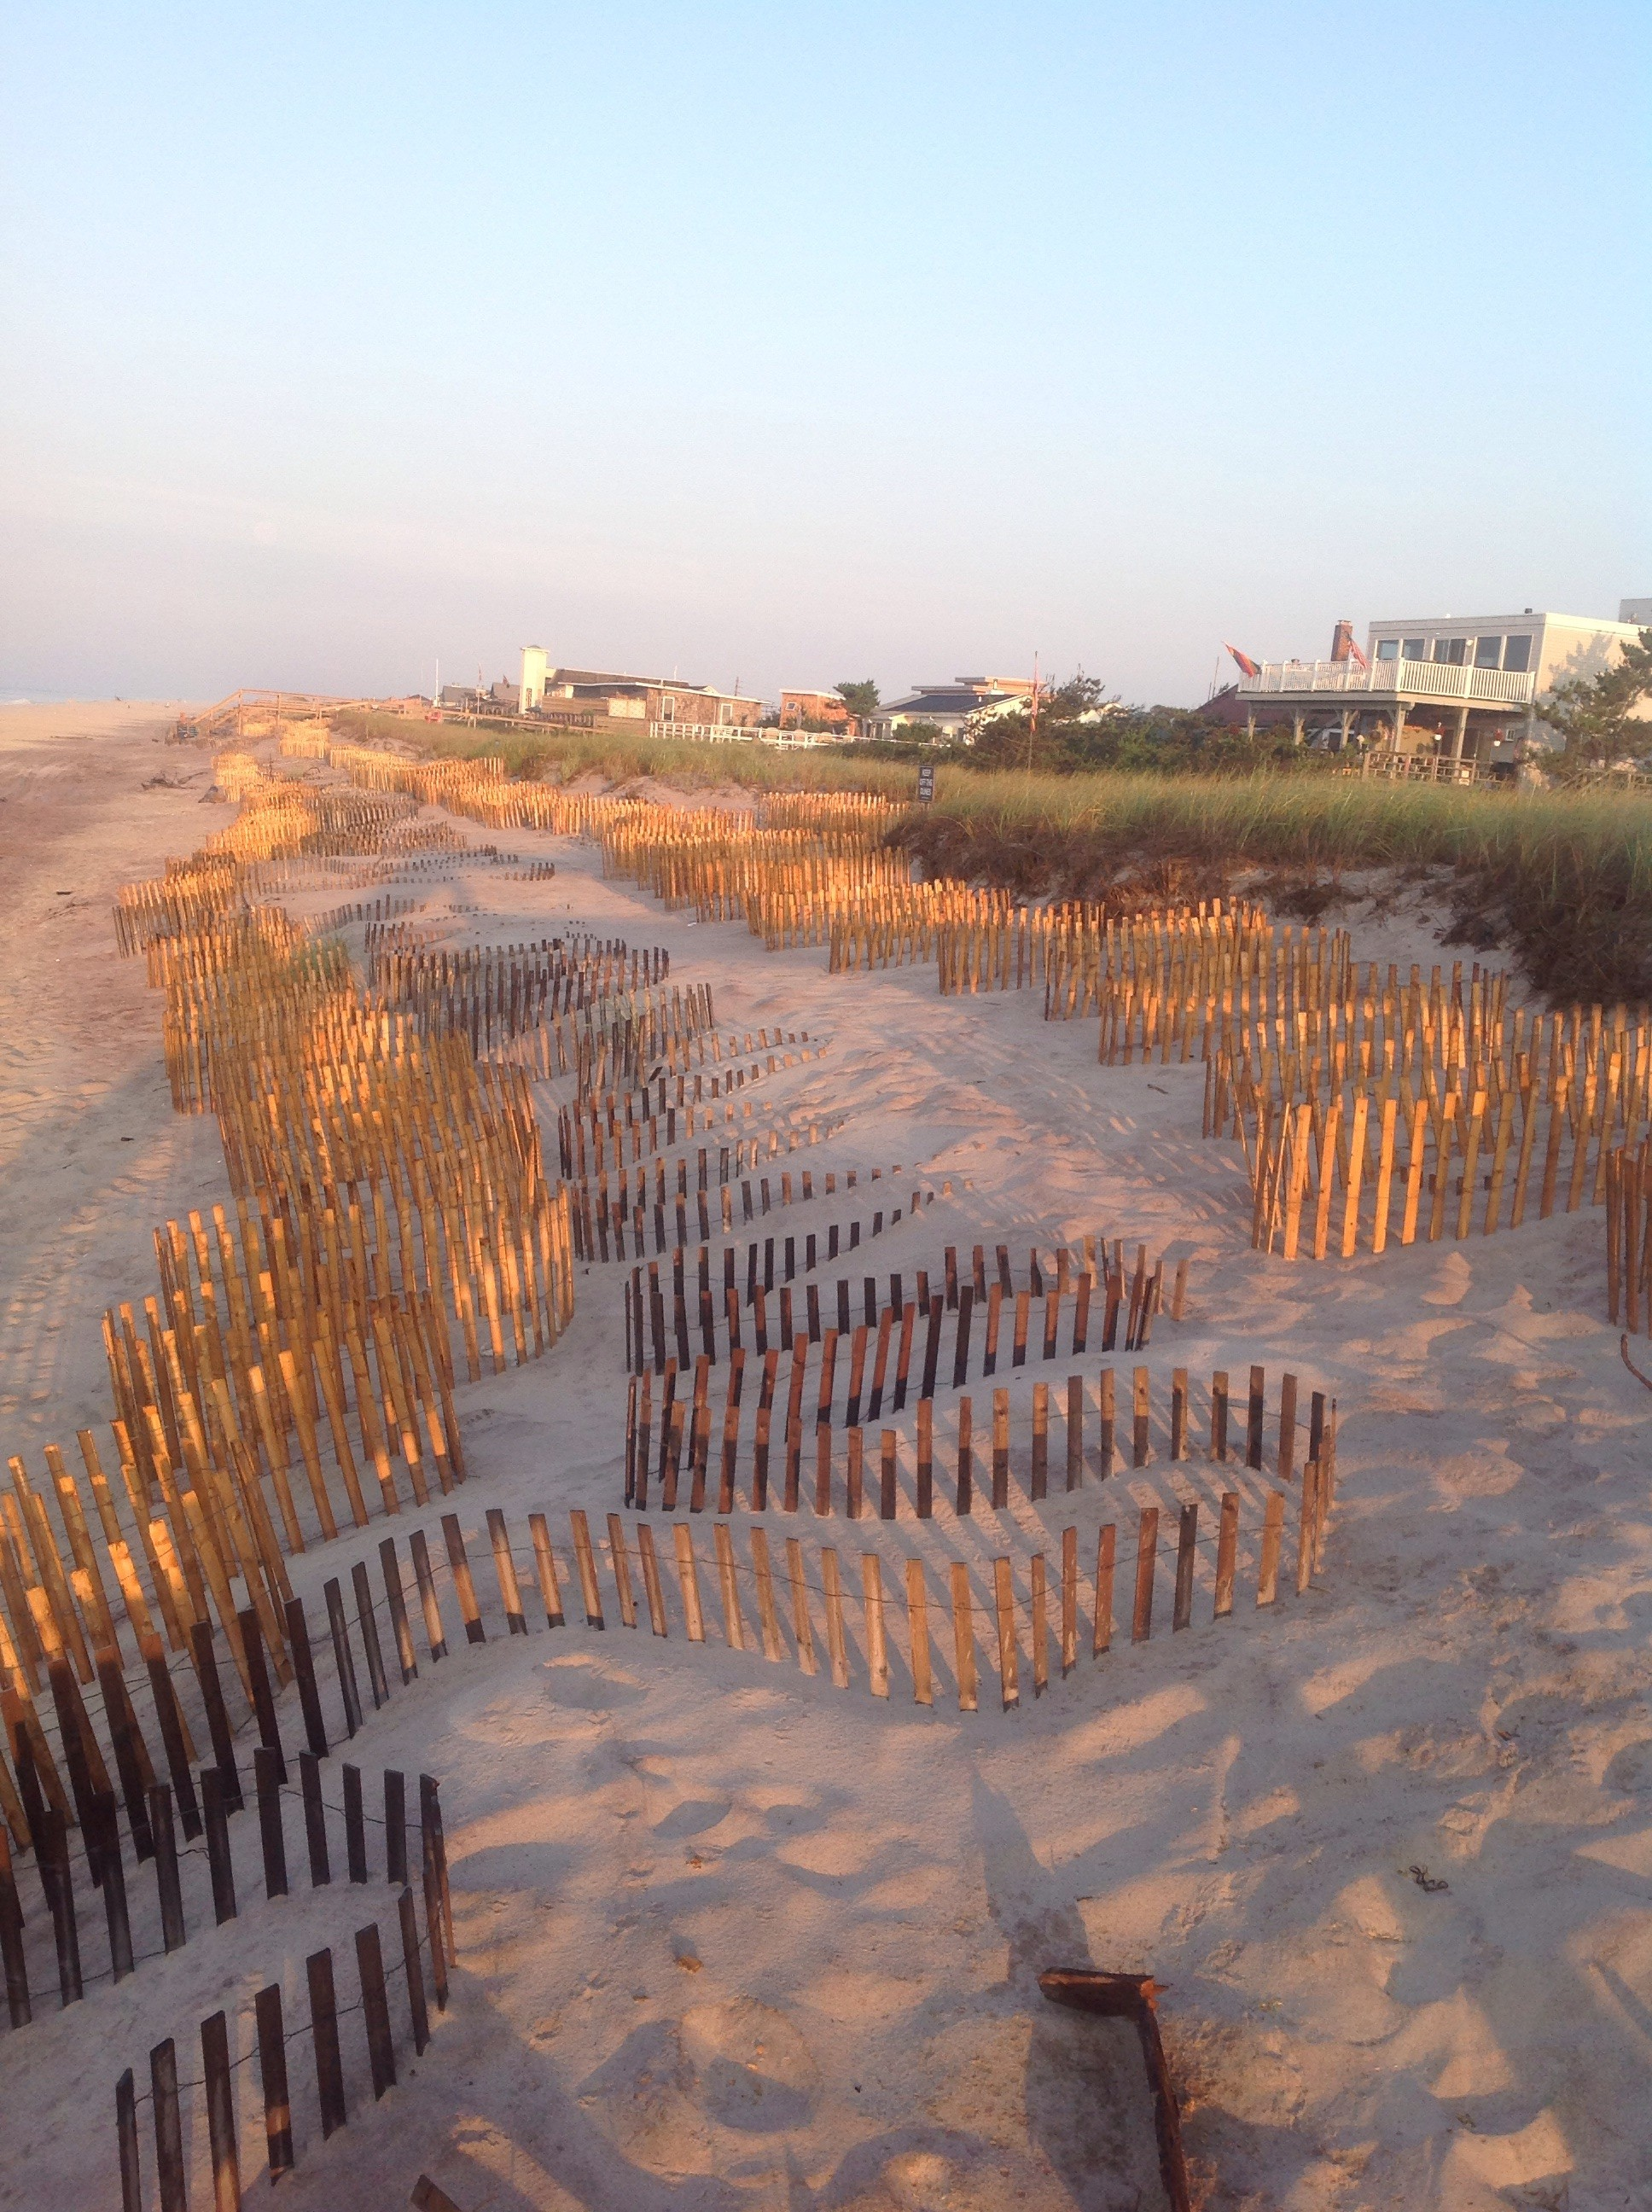 Fencing is used to help collect sand and rebuild the natural dunes.